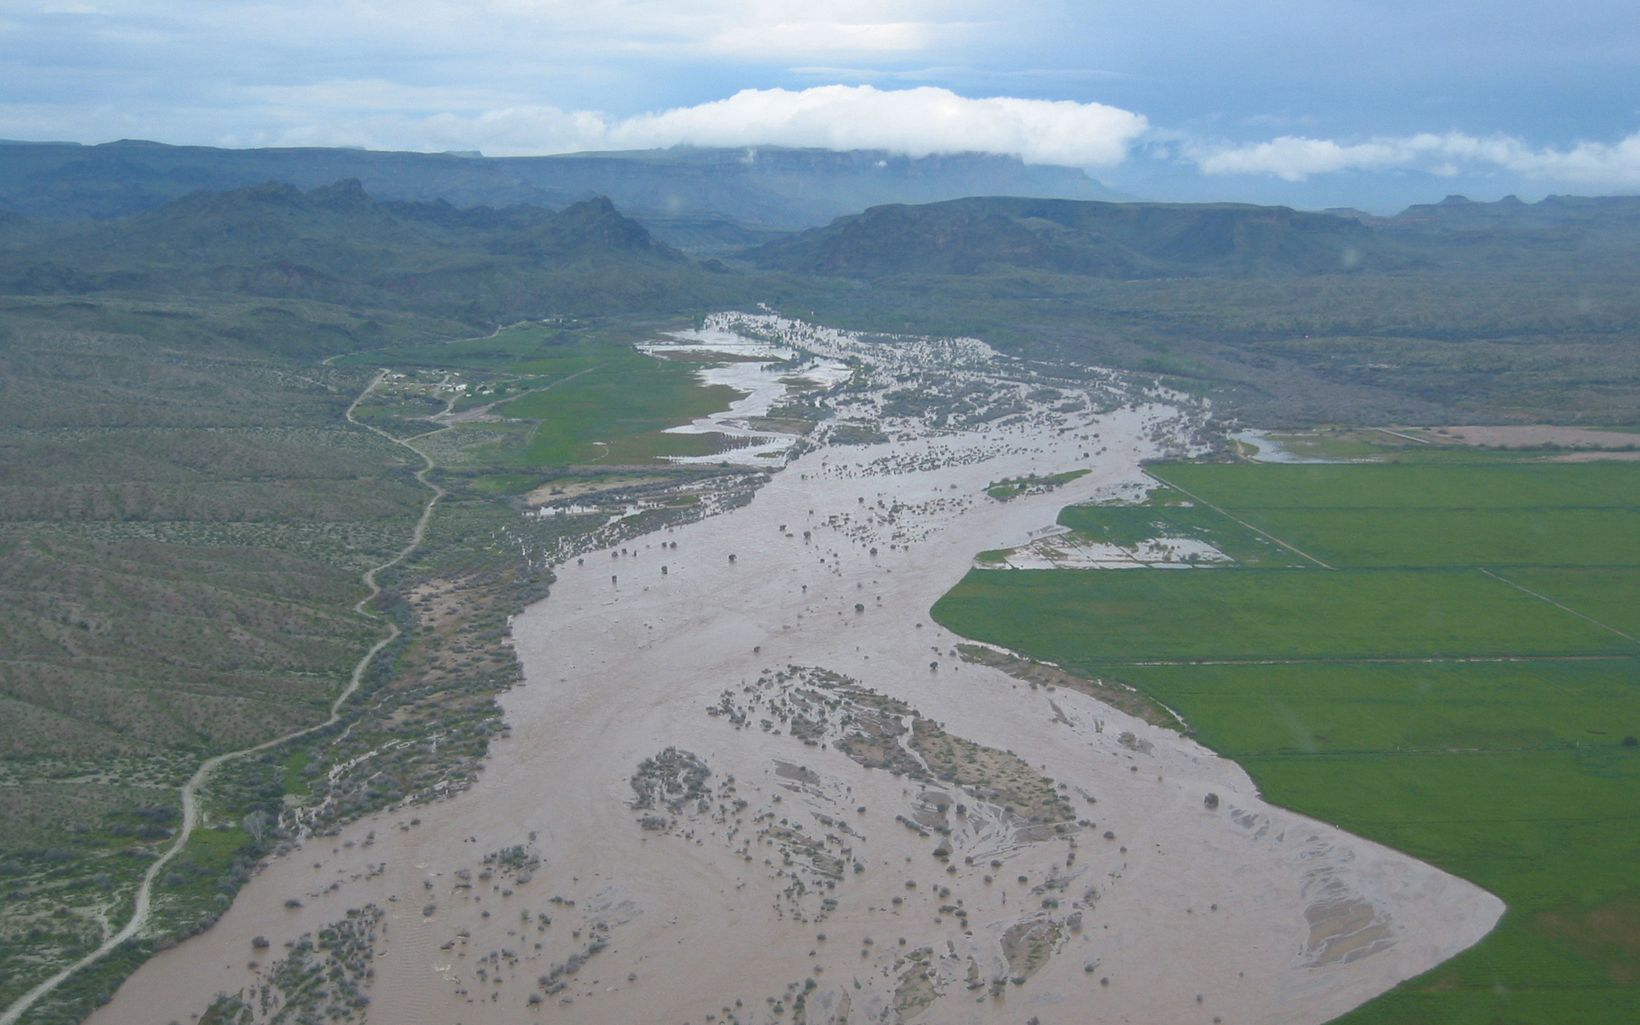 Aerial view of a wide, muddy river in Arizona.